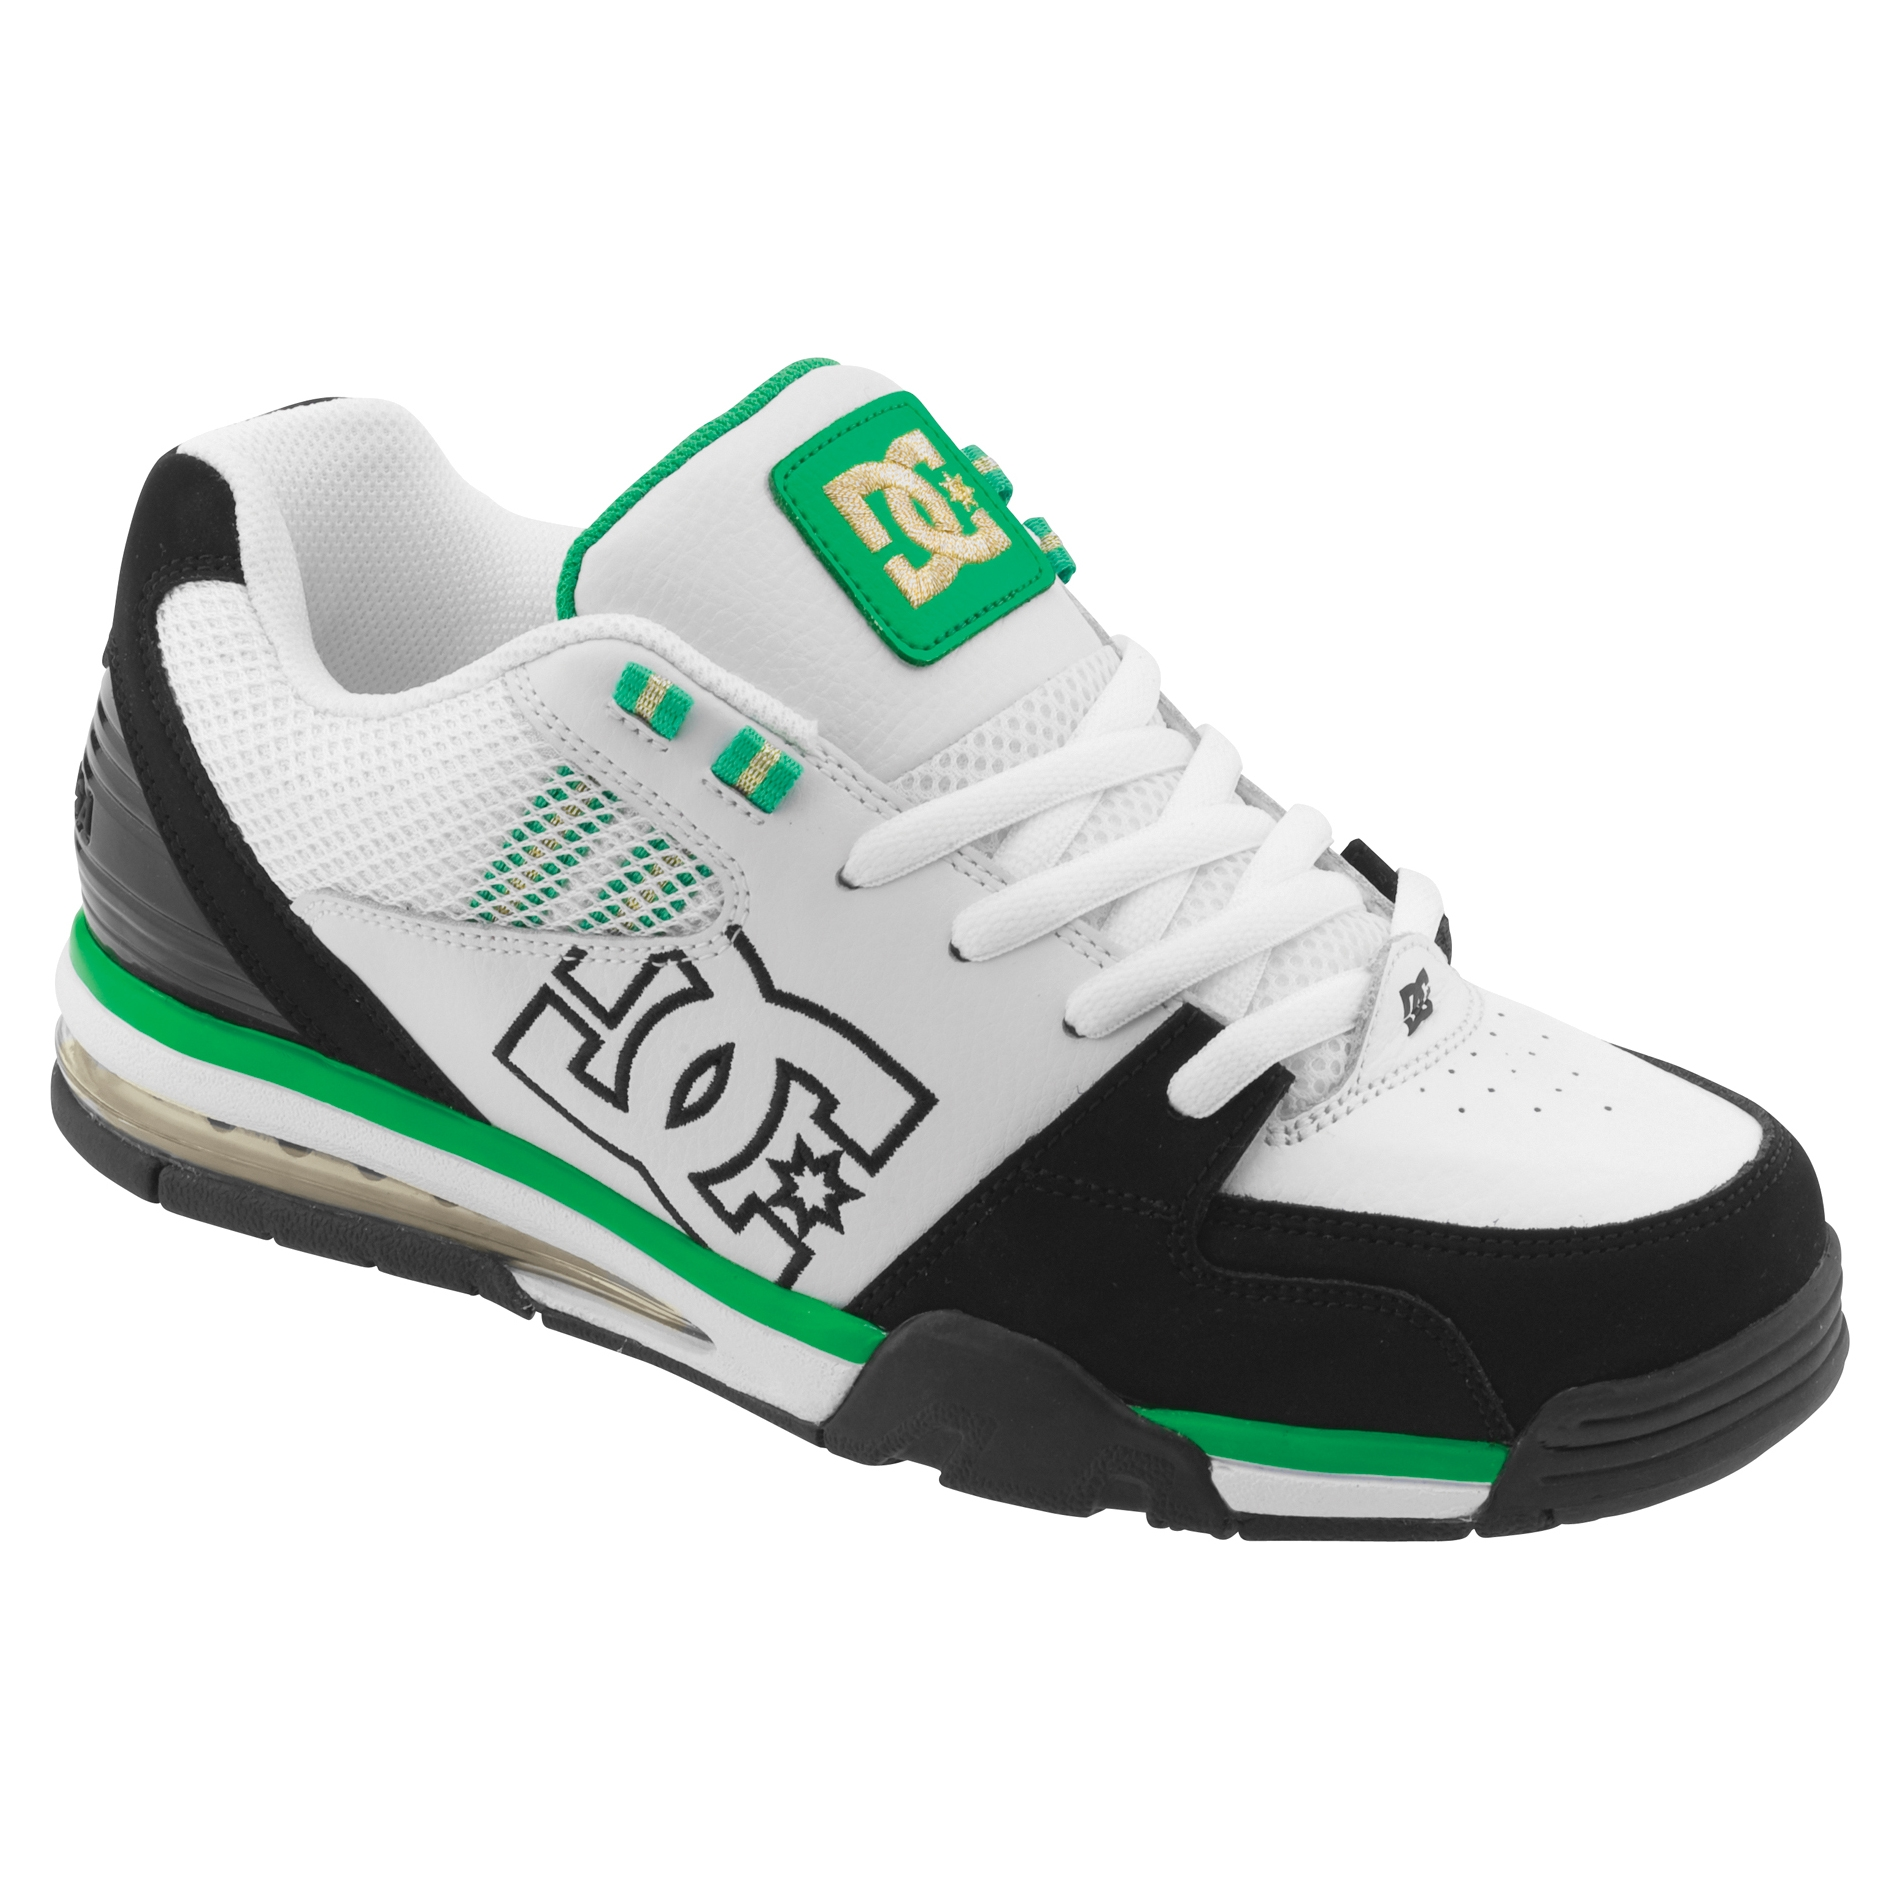 pin dc shoes chaussures versatile noir blanc emerald probikeshop on pinterest. Black Bedroom Furniture Sets. Home Design Ideas